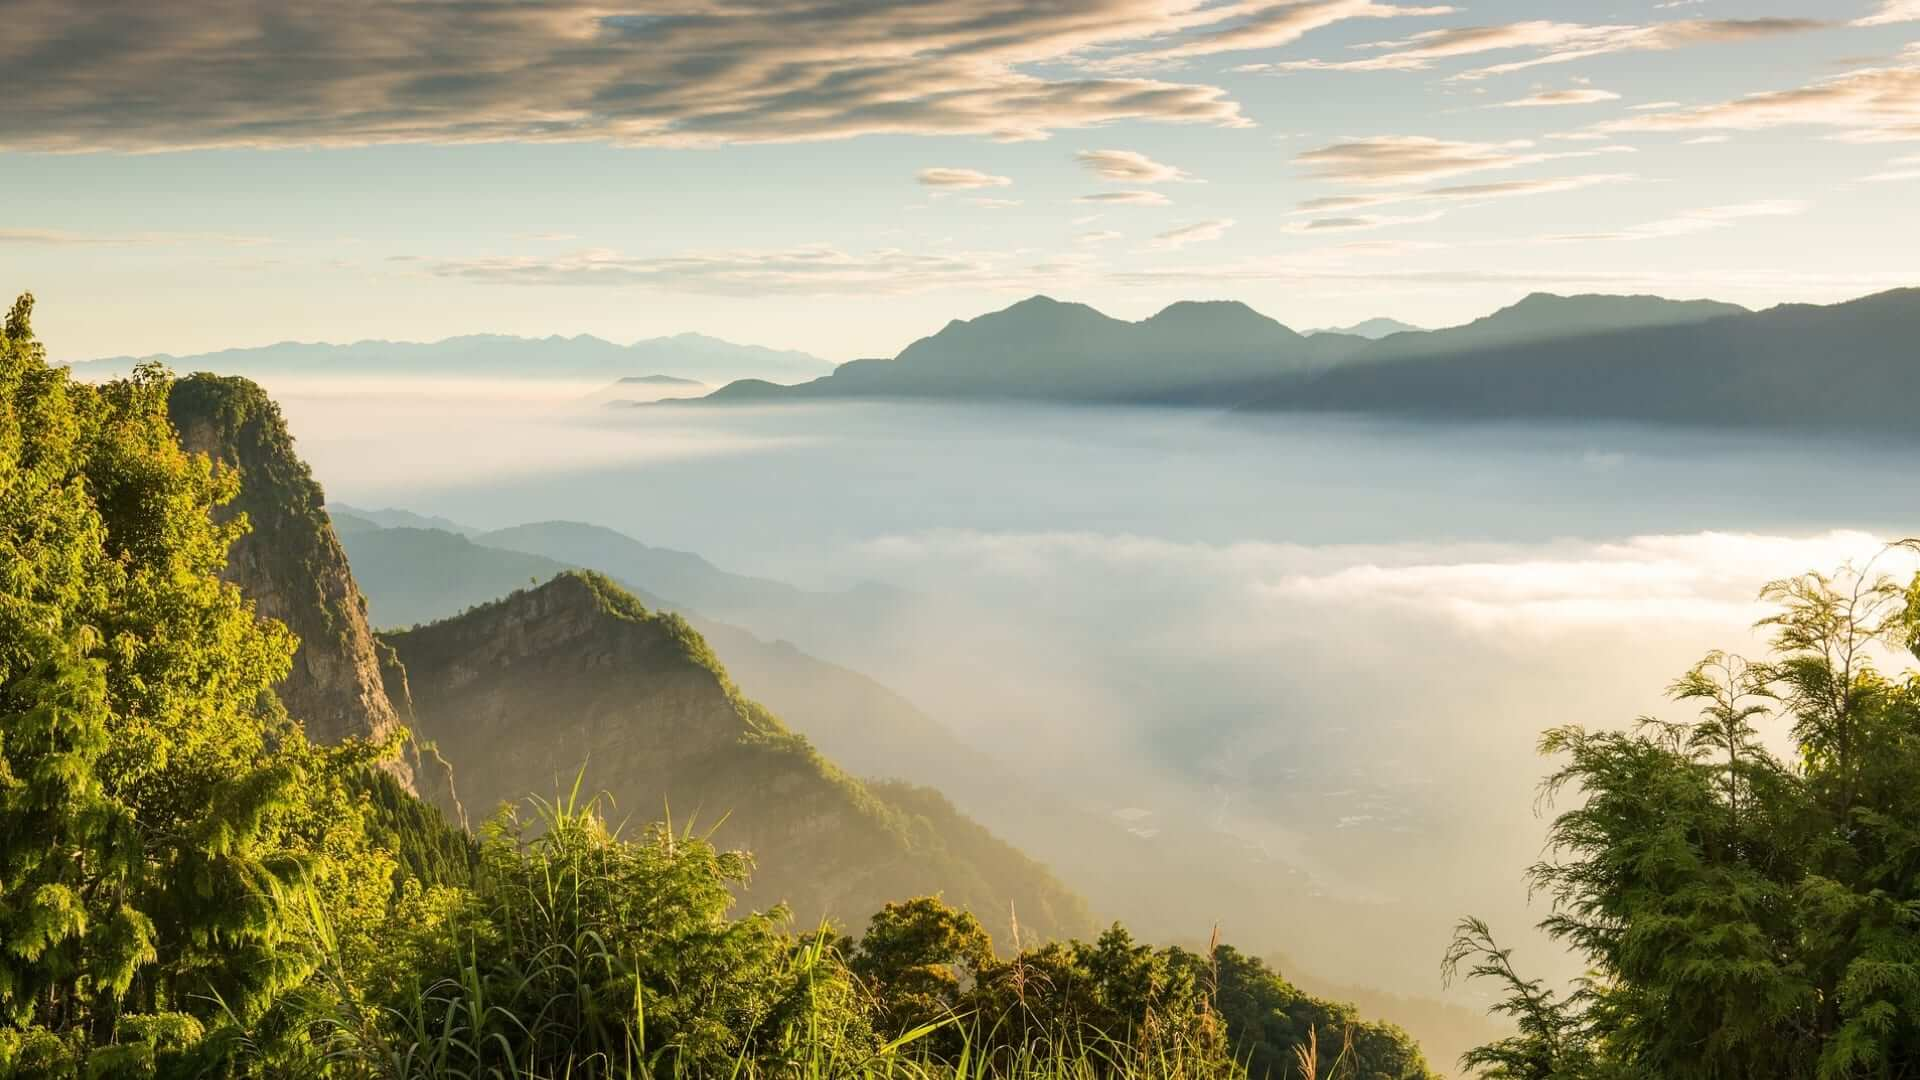 Aerial view from mountains that protrude above mist in Taiwan.